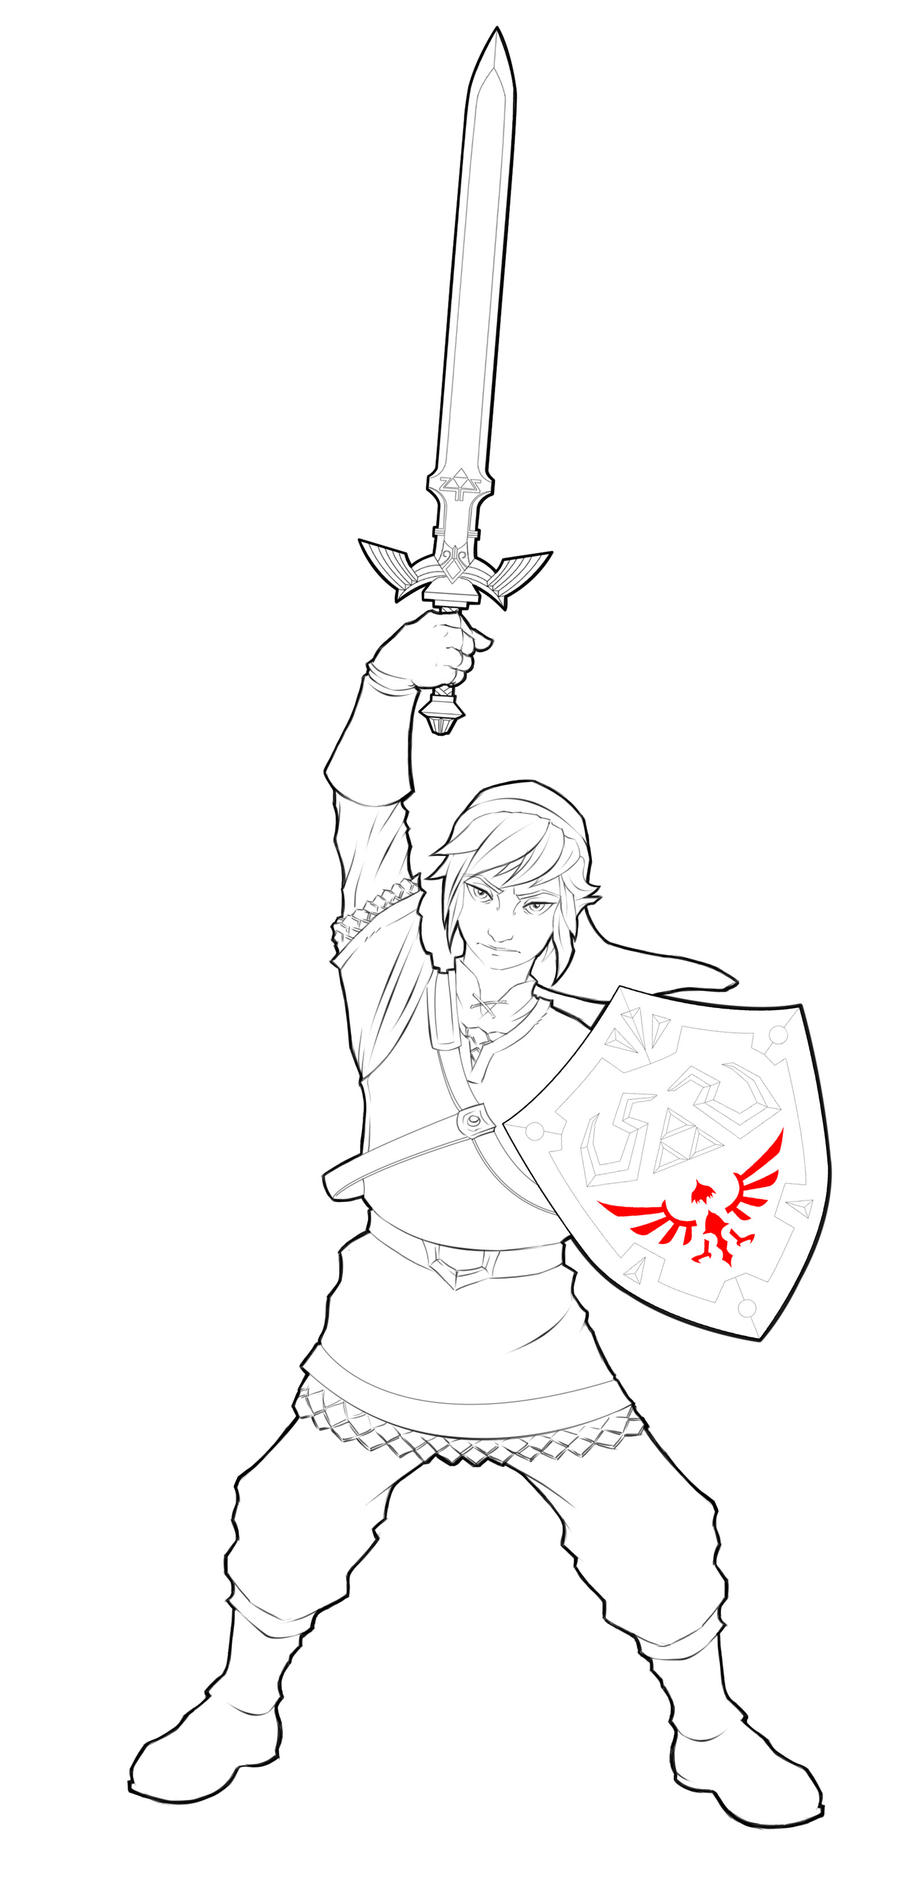 Link, The Hero of Legend lineart by Paterack